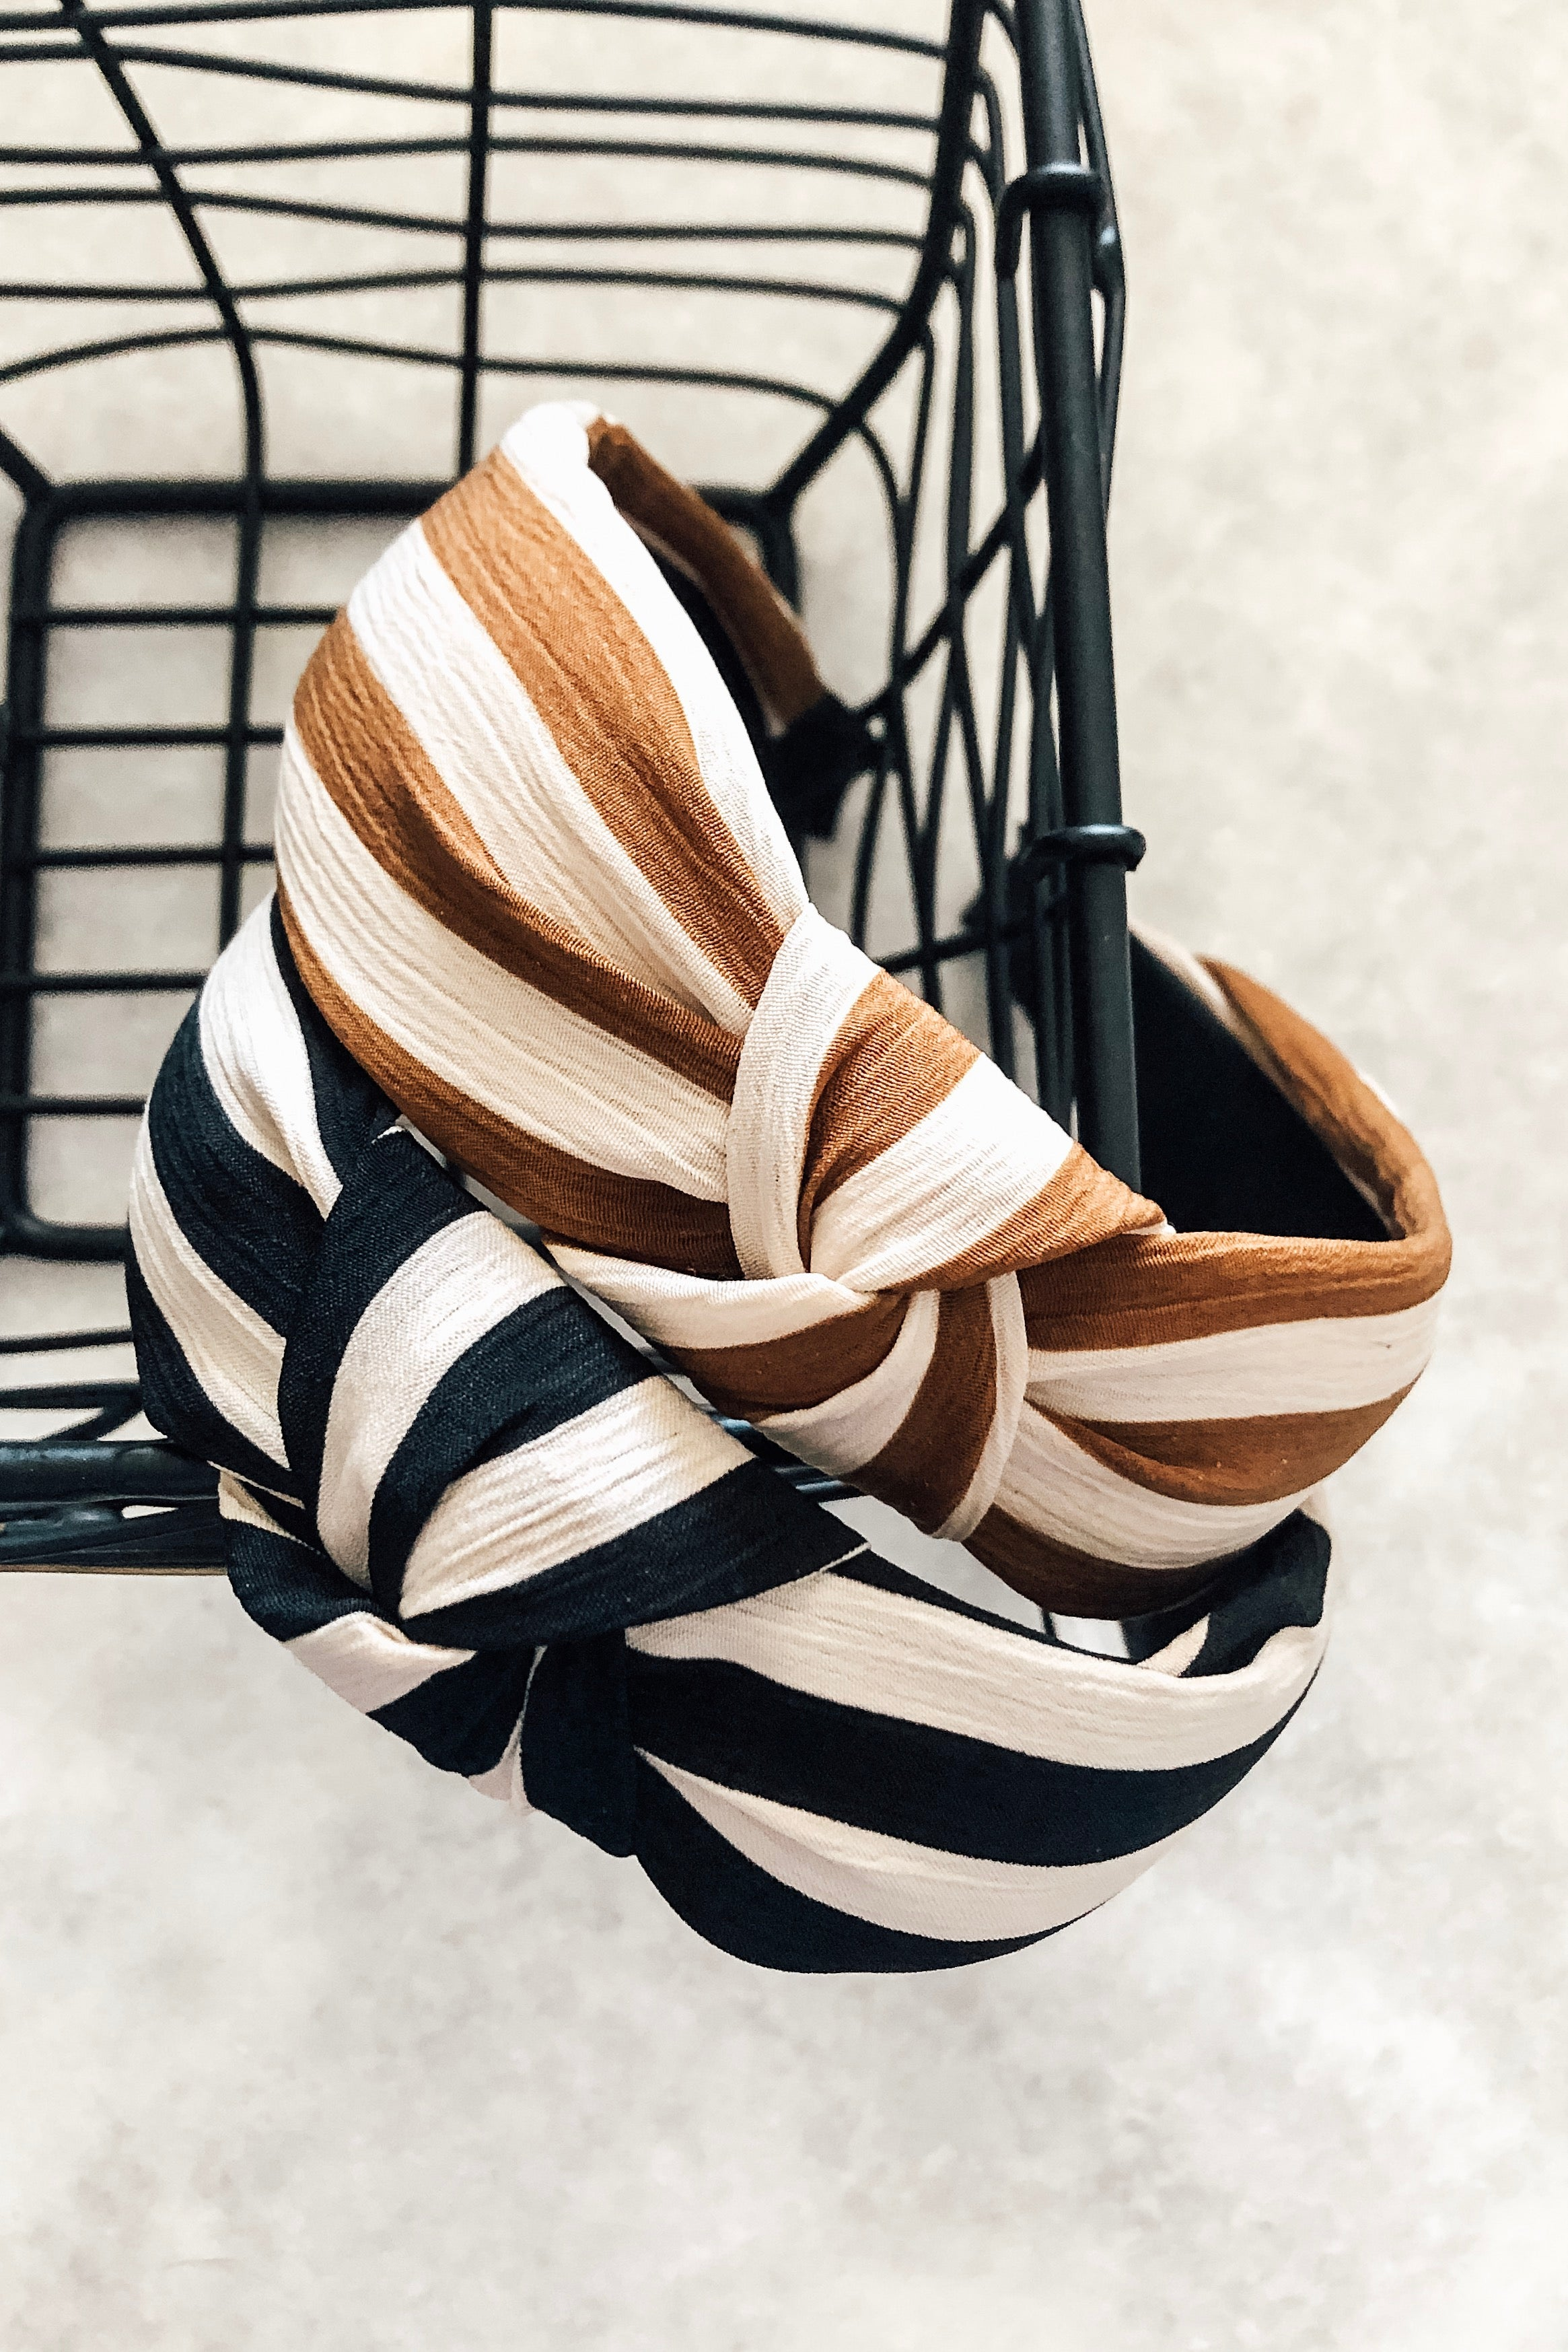 Striped Knotted Headbands